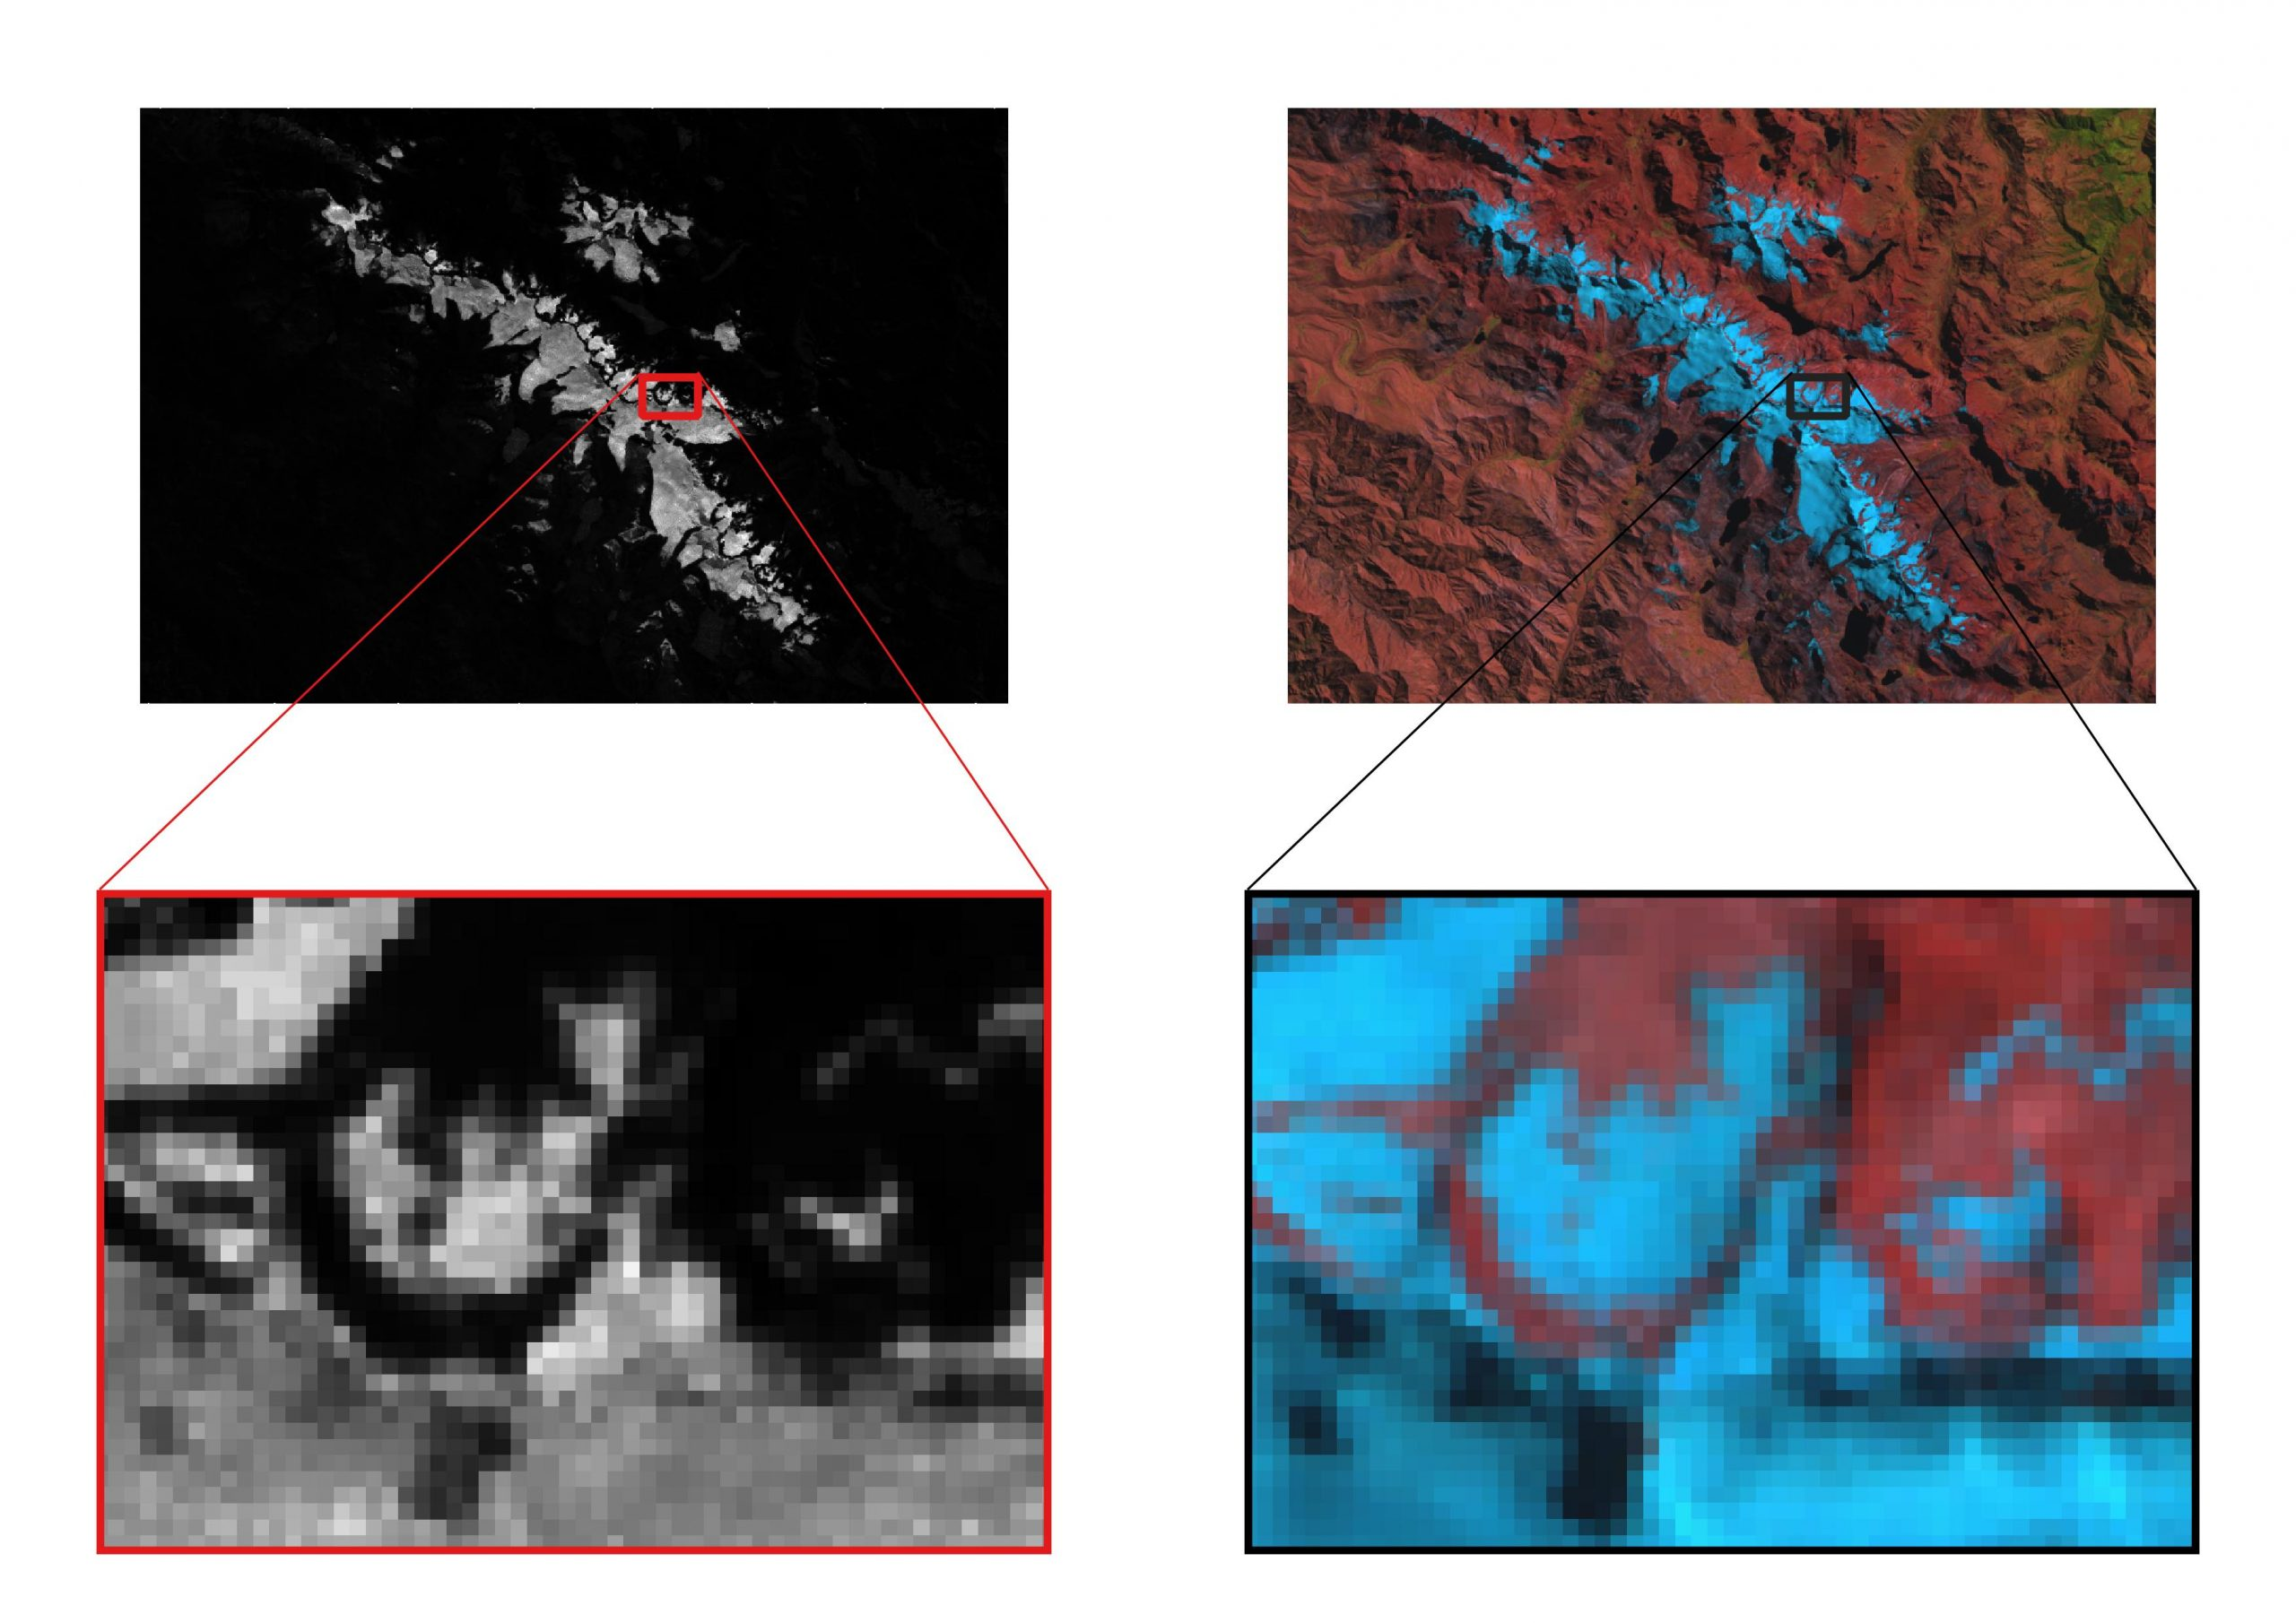 Figure 6: Zoomed section of the ratio image (3 by 5) focusing on an edge of the glacier with a simultaneous view of the false-colour image.